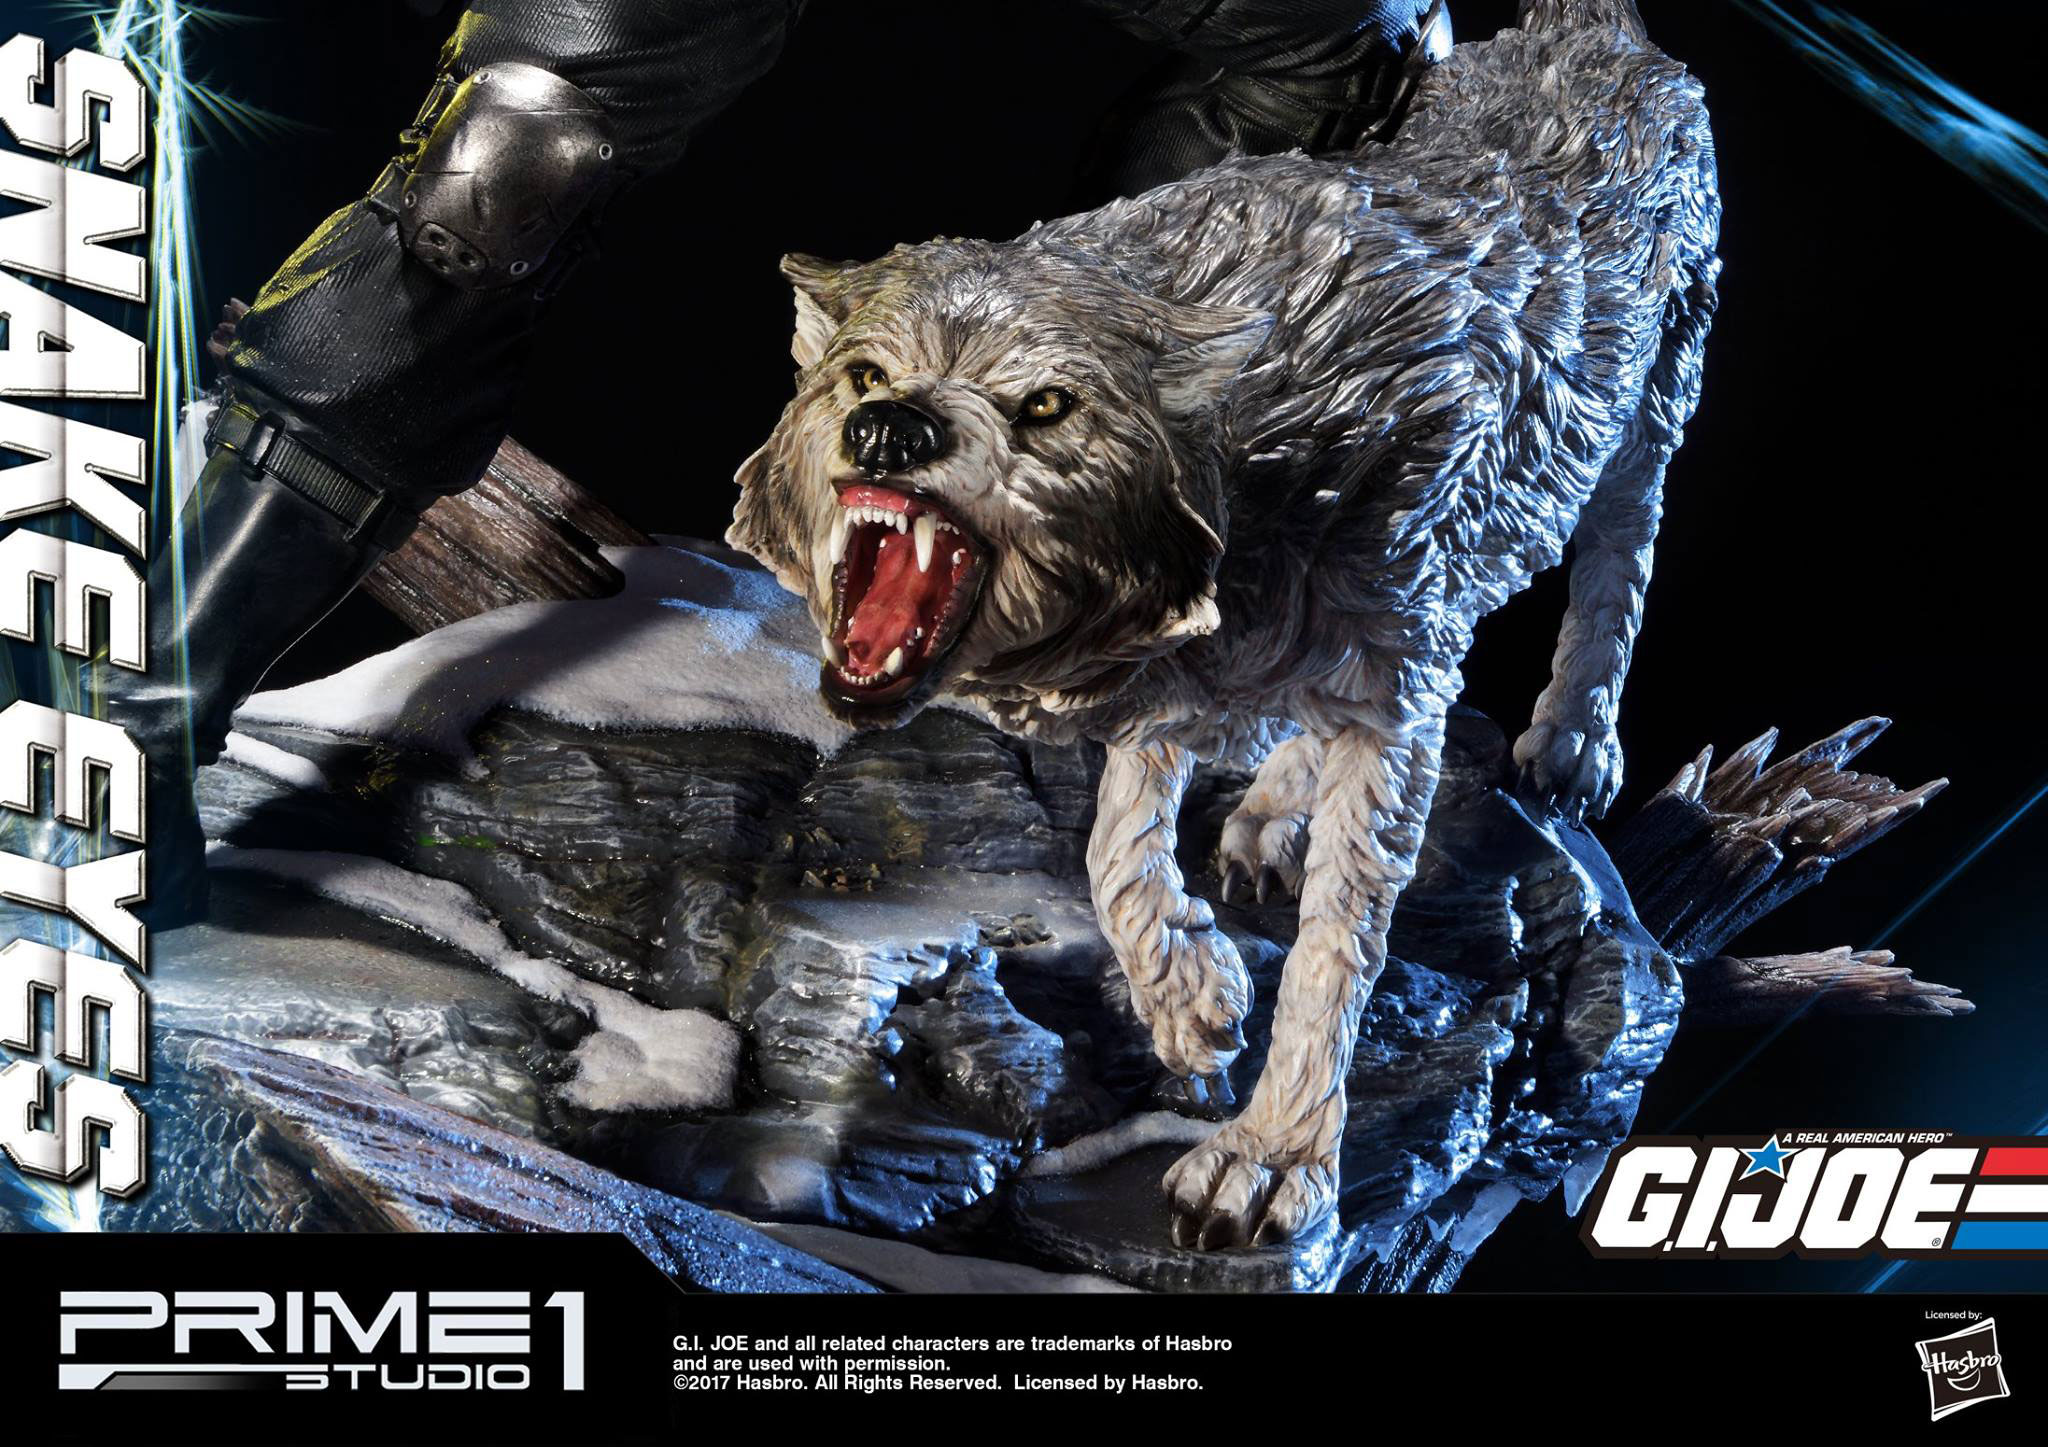 prime-1-studio-snake-eyes-statue-timber-updated-new-photos-3